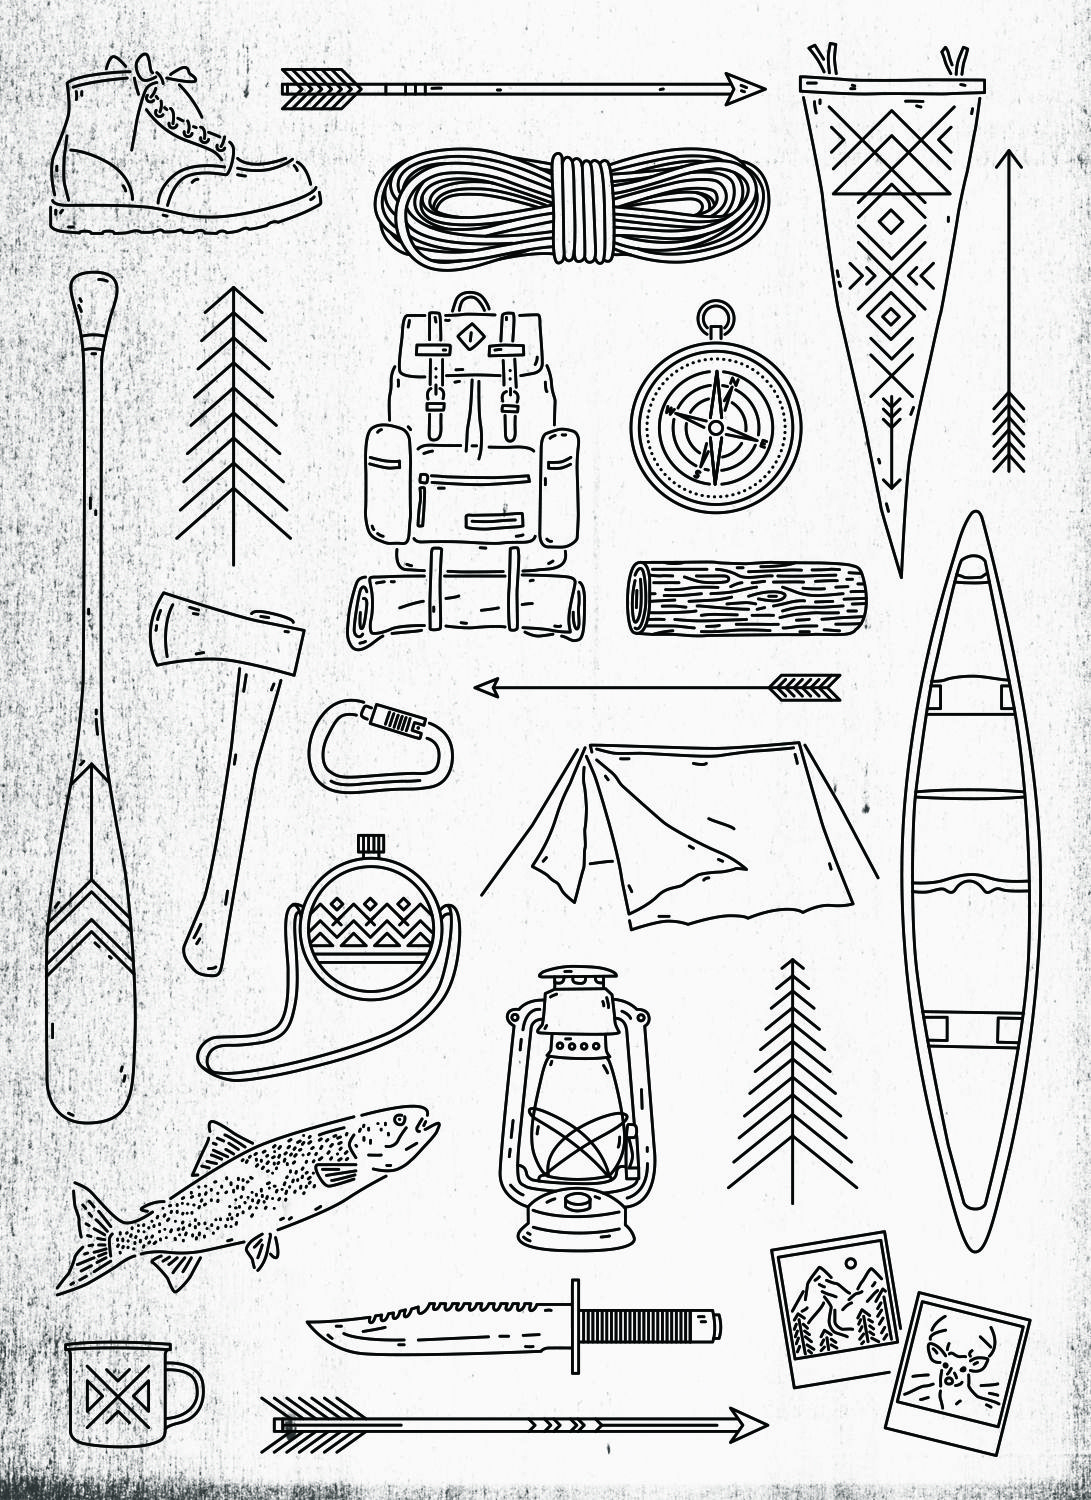 camping print by zachary smith view fullsize here buy here